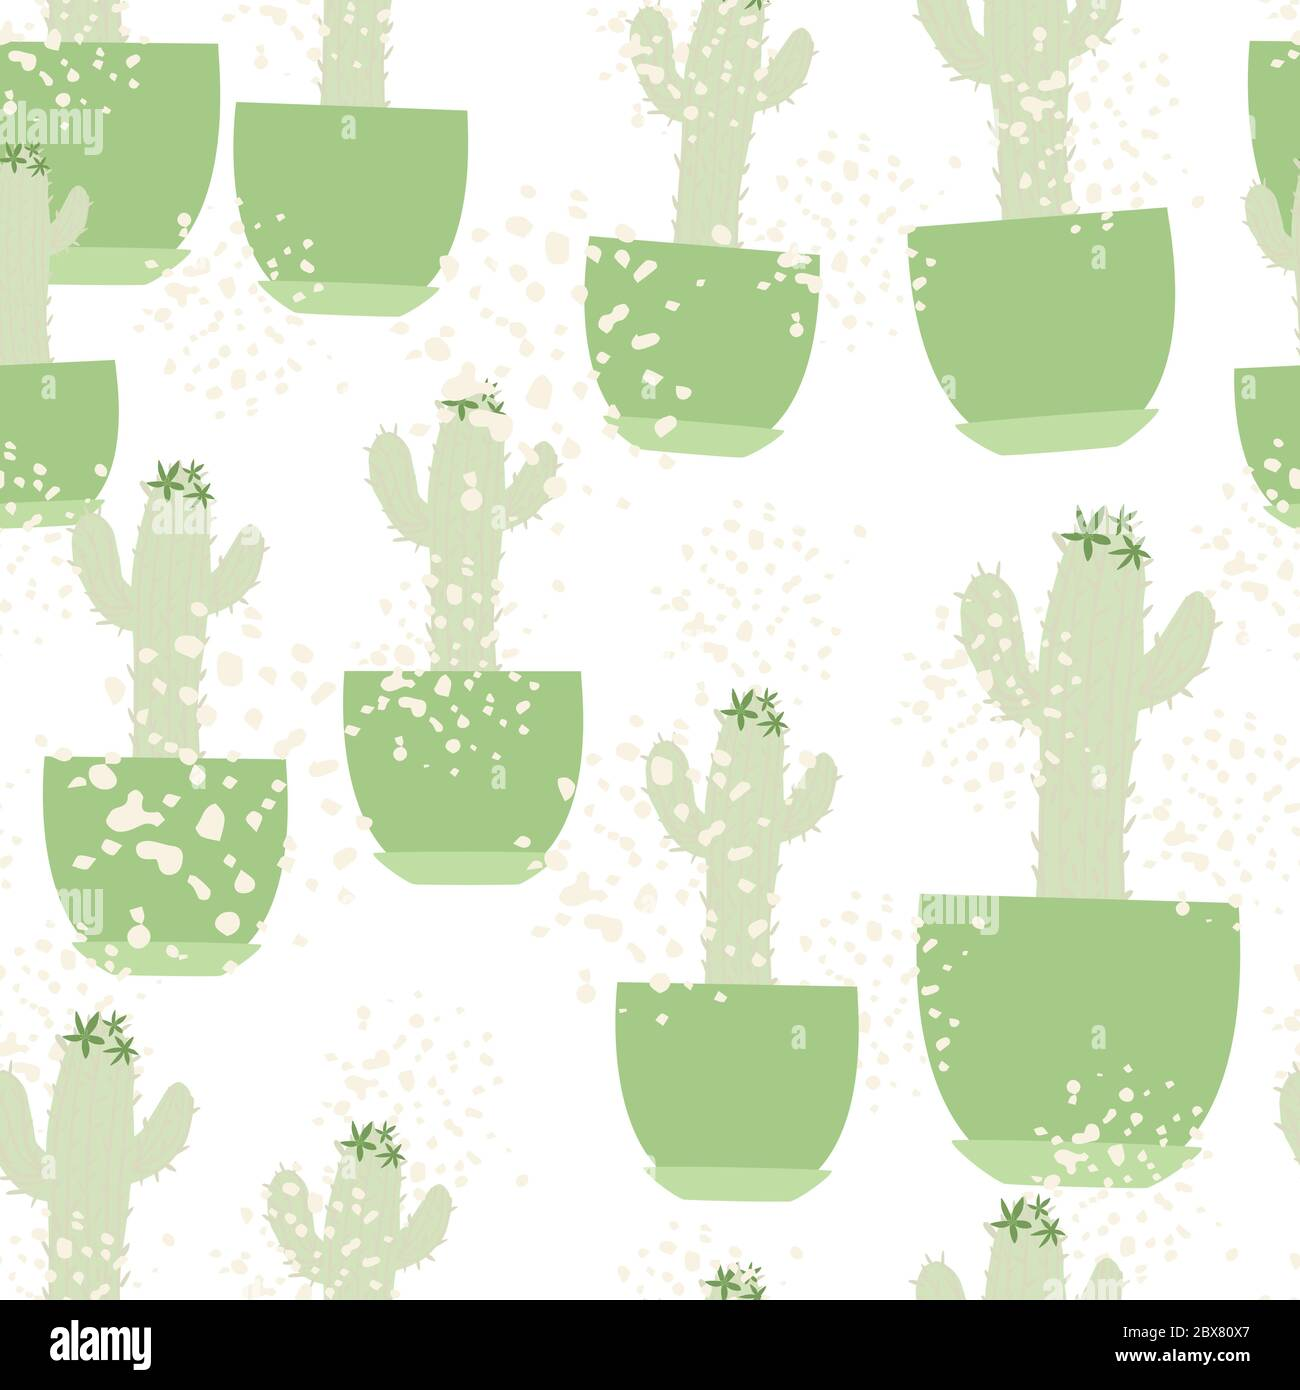 Cute Cactus In Pot Seamless Pattern On White Background Doodle Botanical Exotic Wallpaper Trendy Design For Fabric Textile Print Wrapping Paper K Stock Vector Image Art Alamy